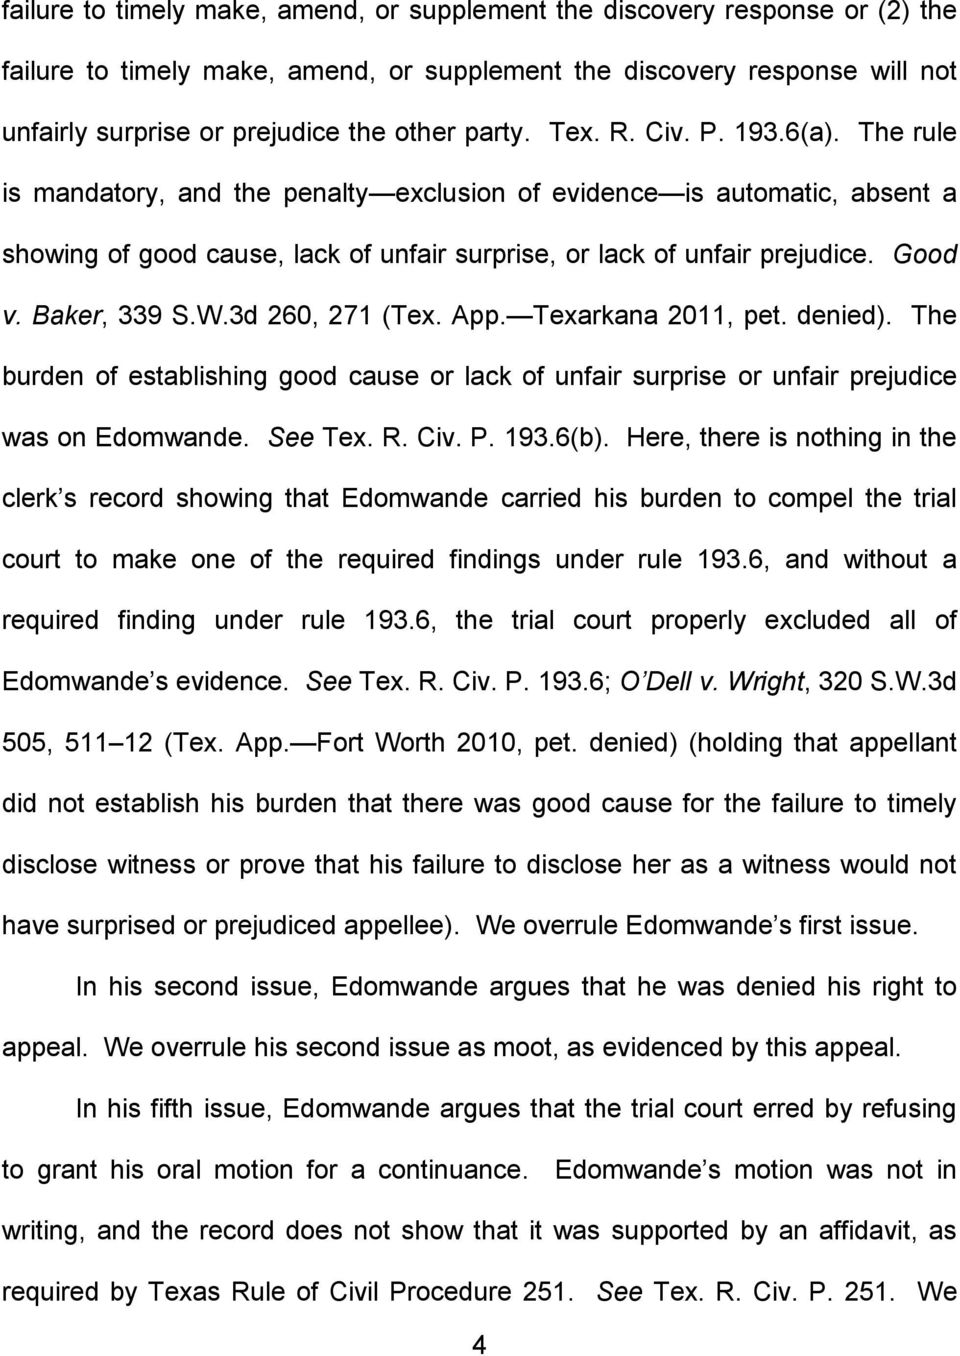 Good v. Baker, 339 S.W.3d 260, 271 (Tex. App. Texarkana 2011, pet. denied). The burden of establishing good cause or lack of unfair surprise or unfair prejudice was on Edomwande. See Tex. R. Civ. P.